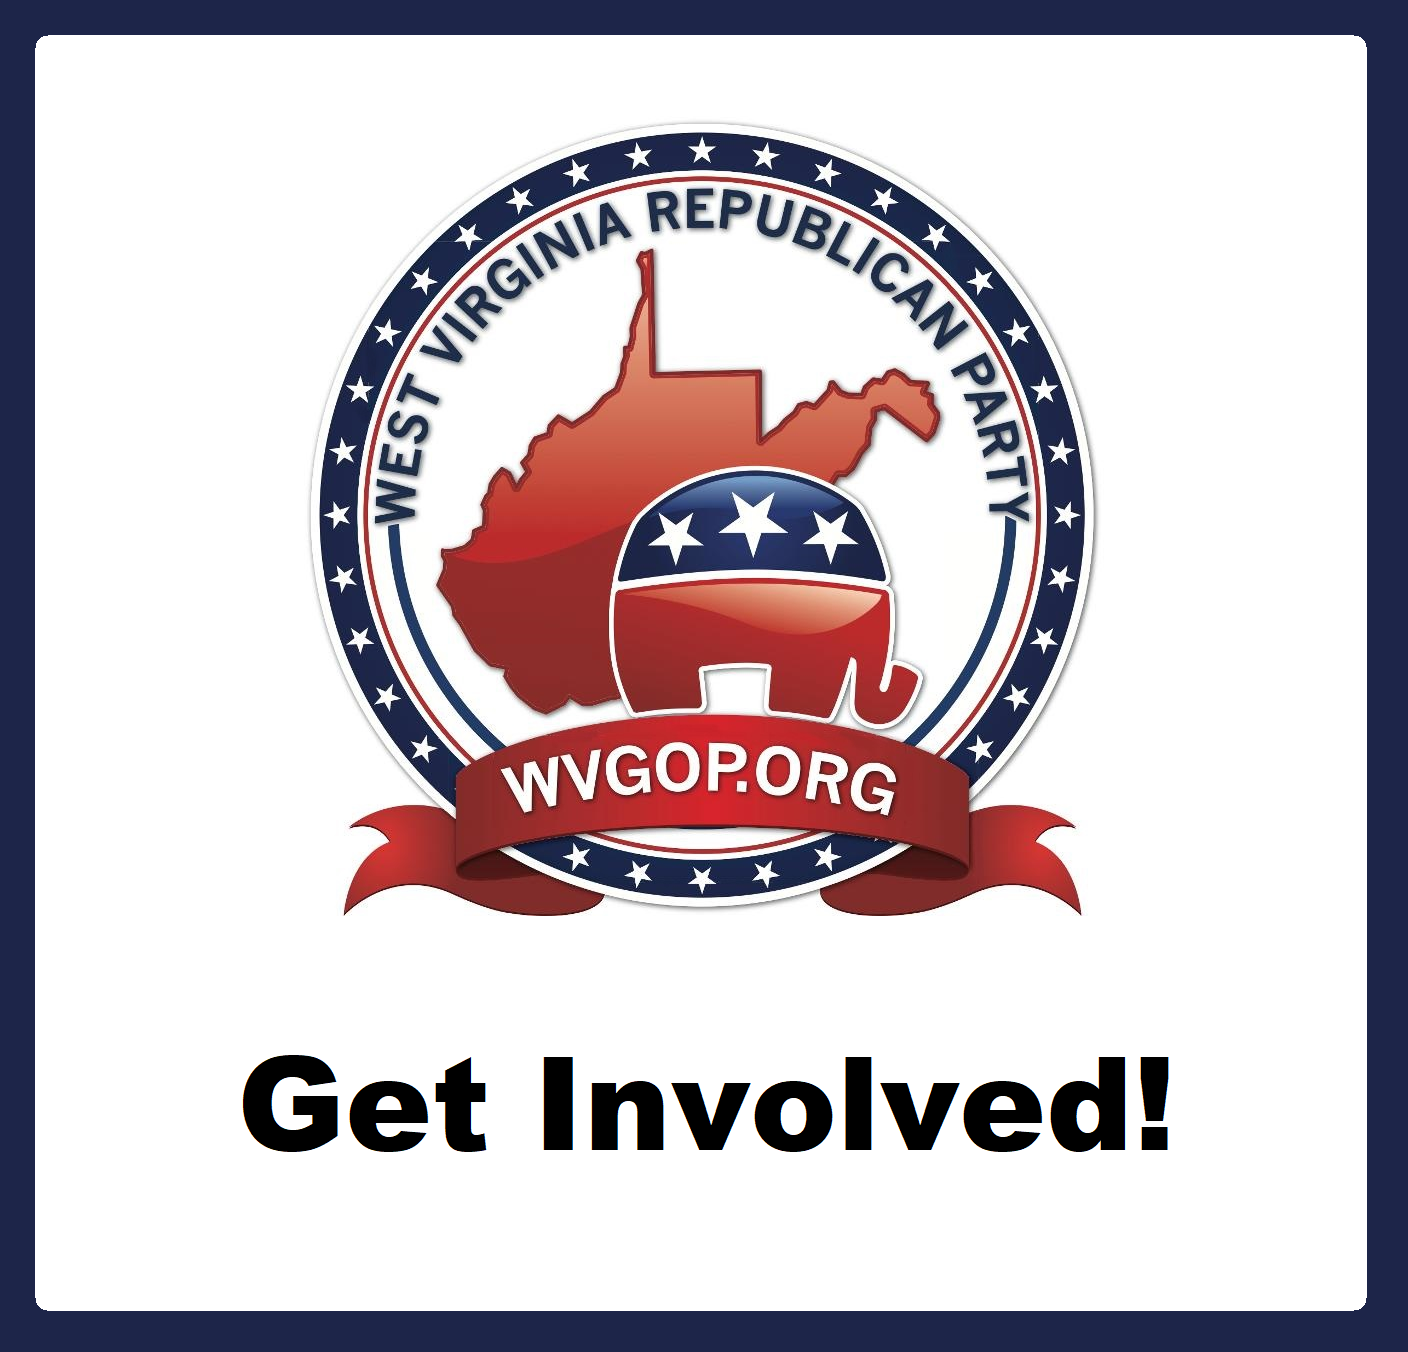 Get Involved and Help Make West Virginia Great Again!